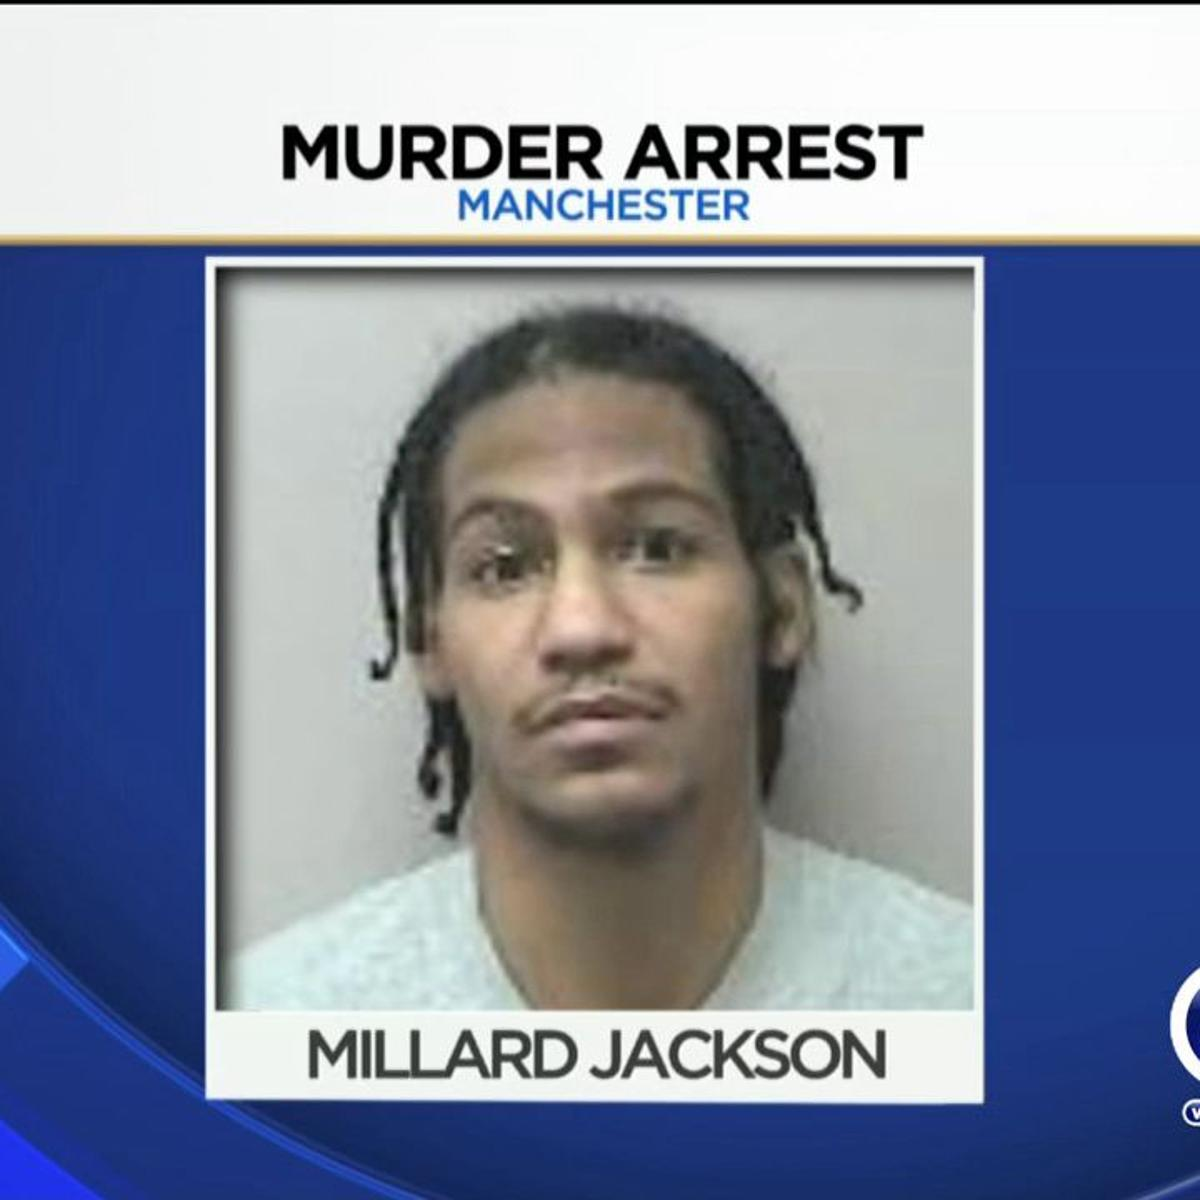 Video: Man accused in Manchester murder was half brother to victim